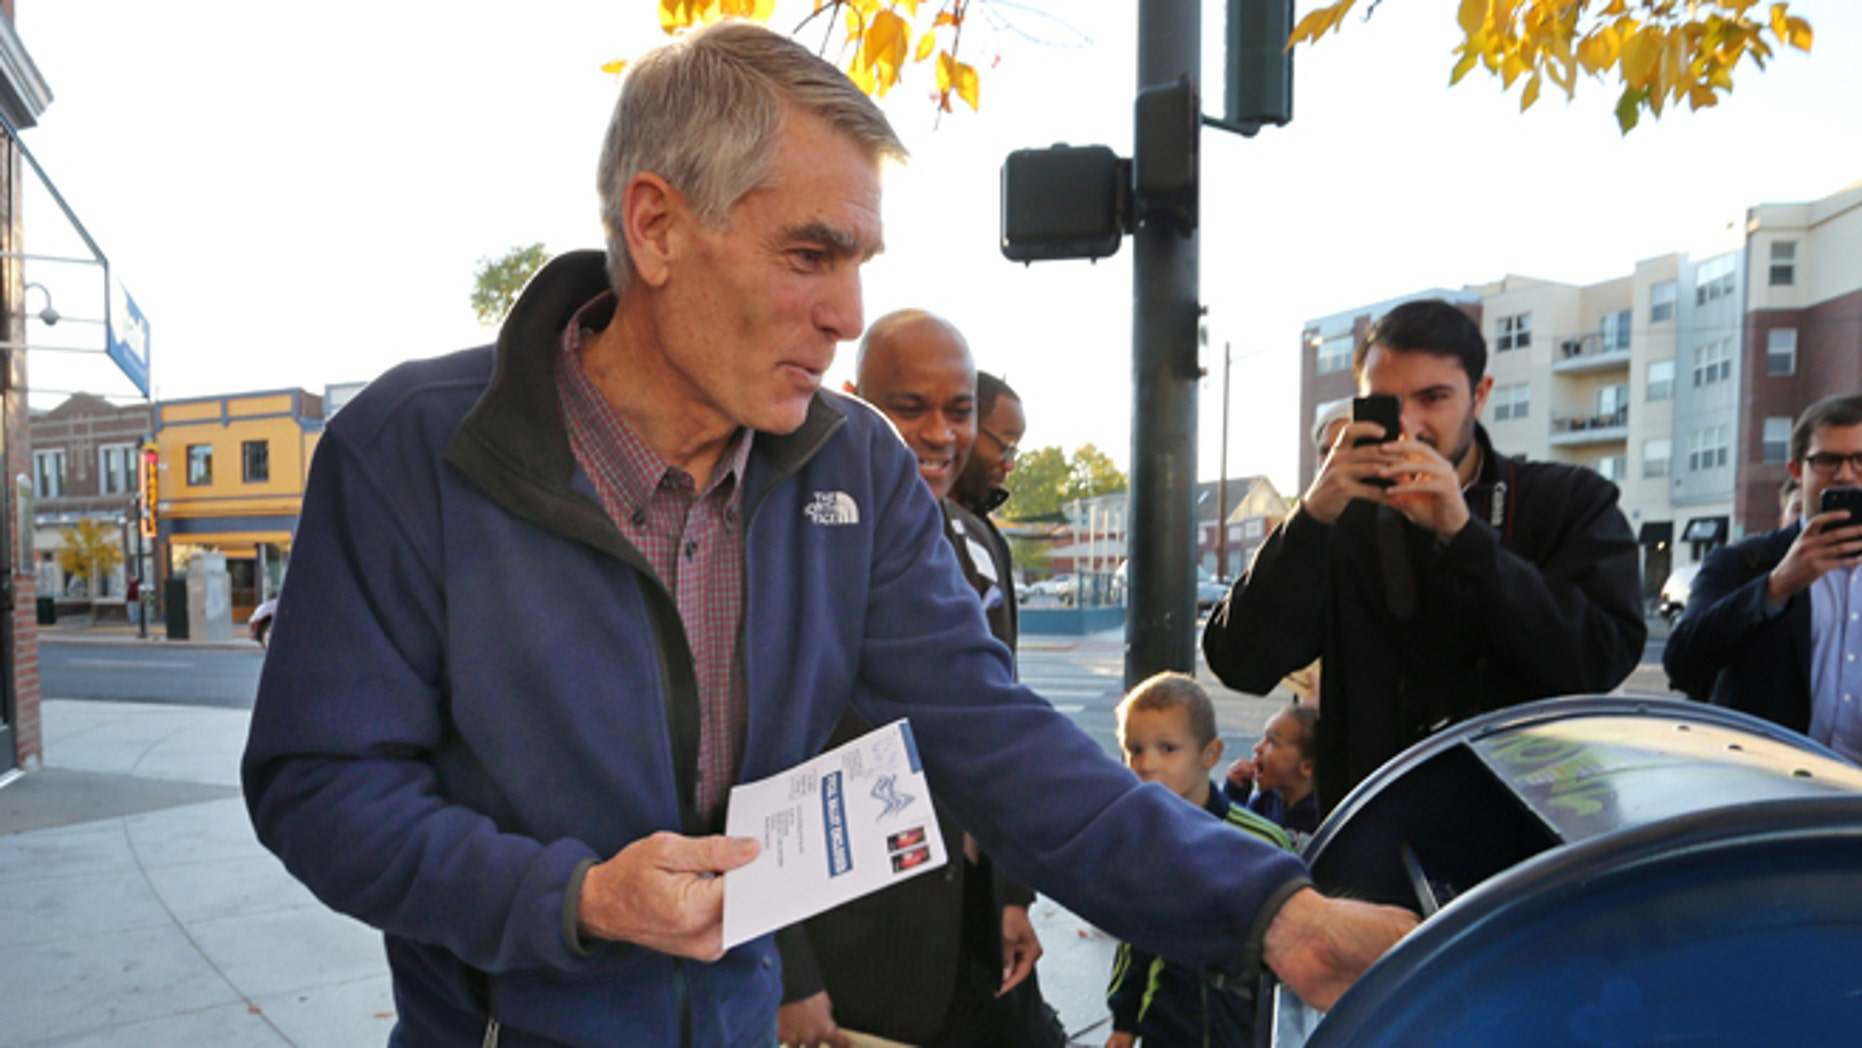 FILE: Oct. 20, 2014: Sen. Mark Udall, D-Colo., mails his ballot, in the Five Points area of Denver. Colo.